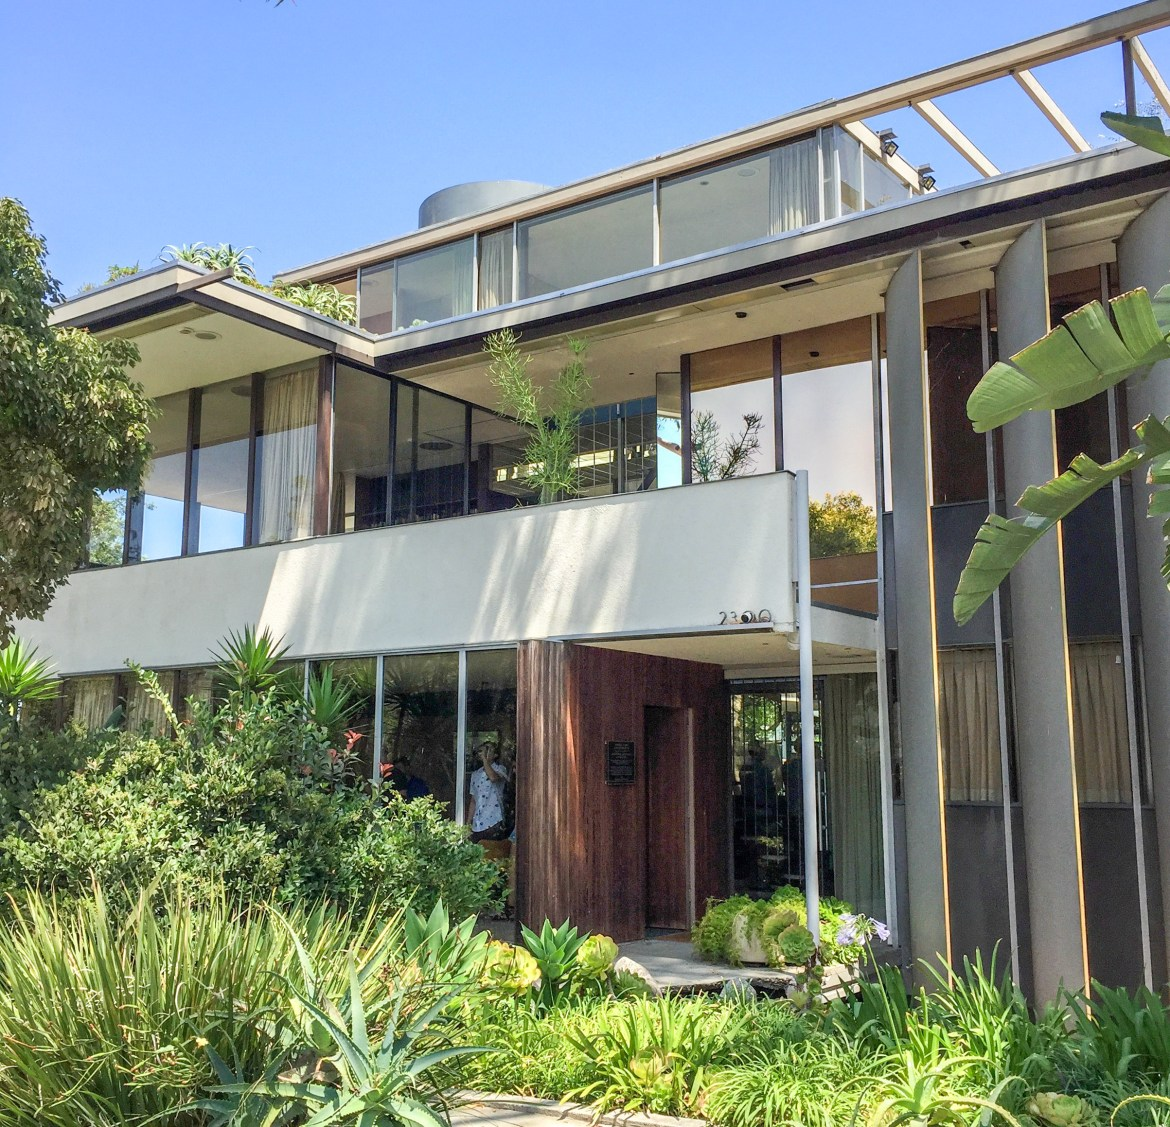 #laarchitecture #neutra The Neutra VDL House Silver Lake Los Angeles California